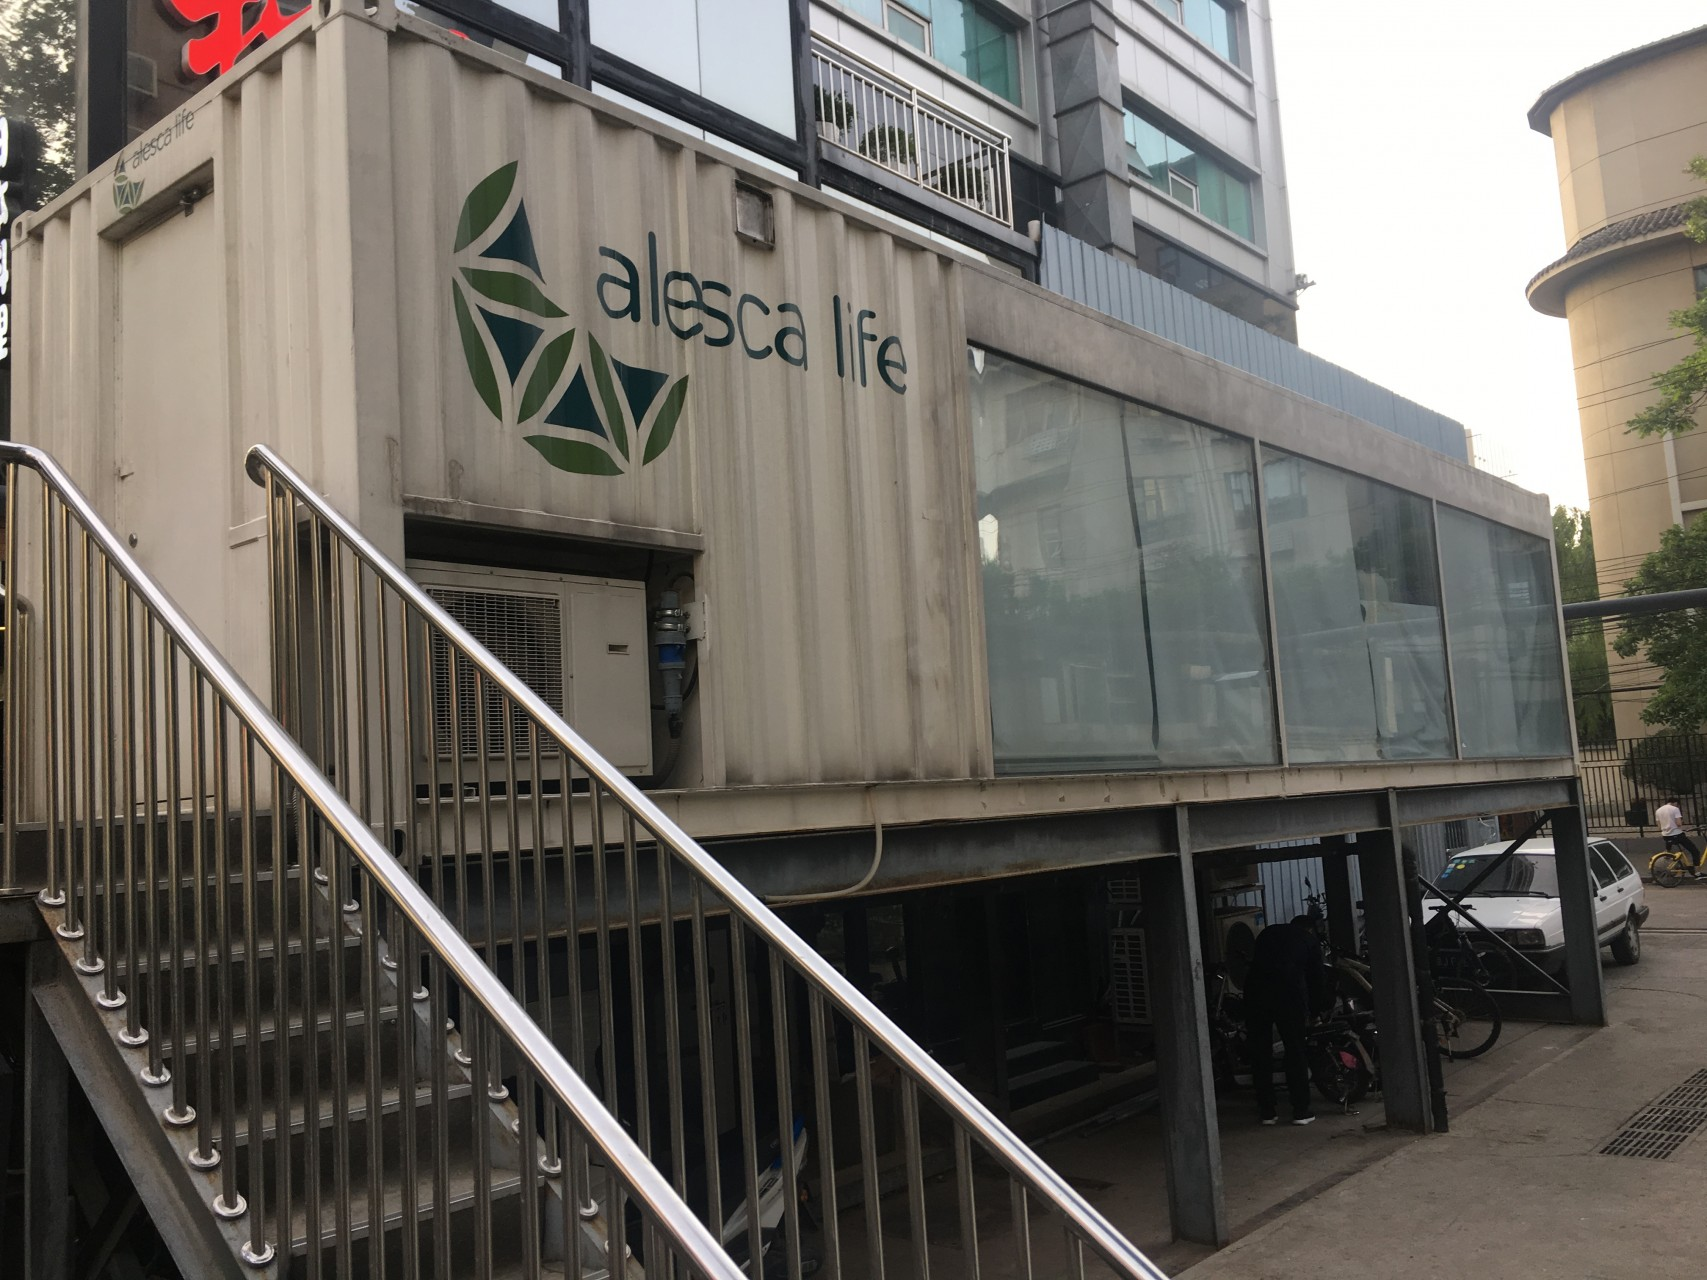 IMG_1951-3 Despite growing demand for better food, China isn't quite ready for indoor farming Features Alesca Life